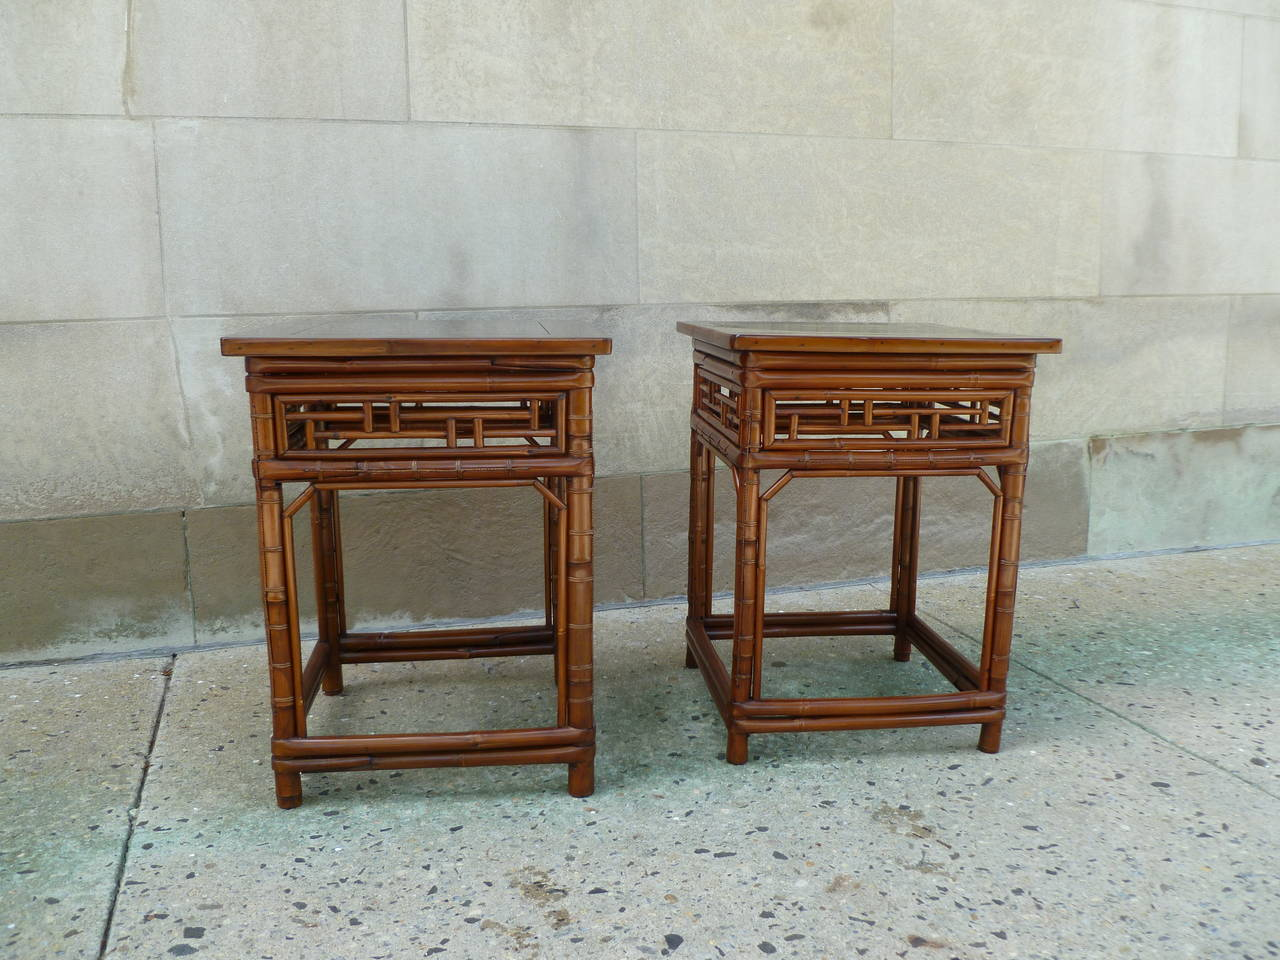 Delightful A Pair Of Elegant Square End Tables With Black Lacquer Top And Bamboo  Lattice Fretwork,